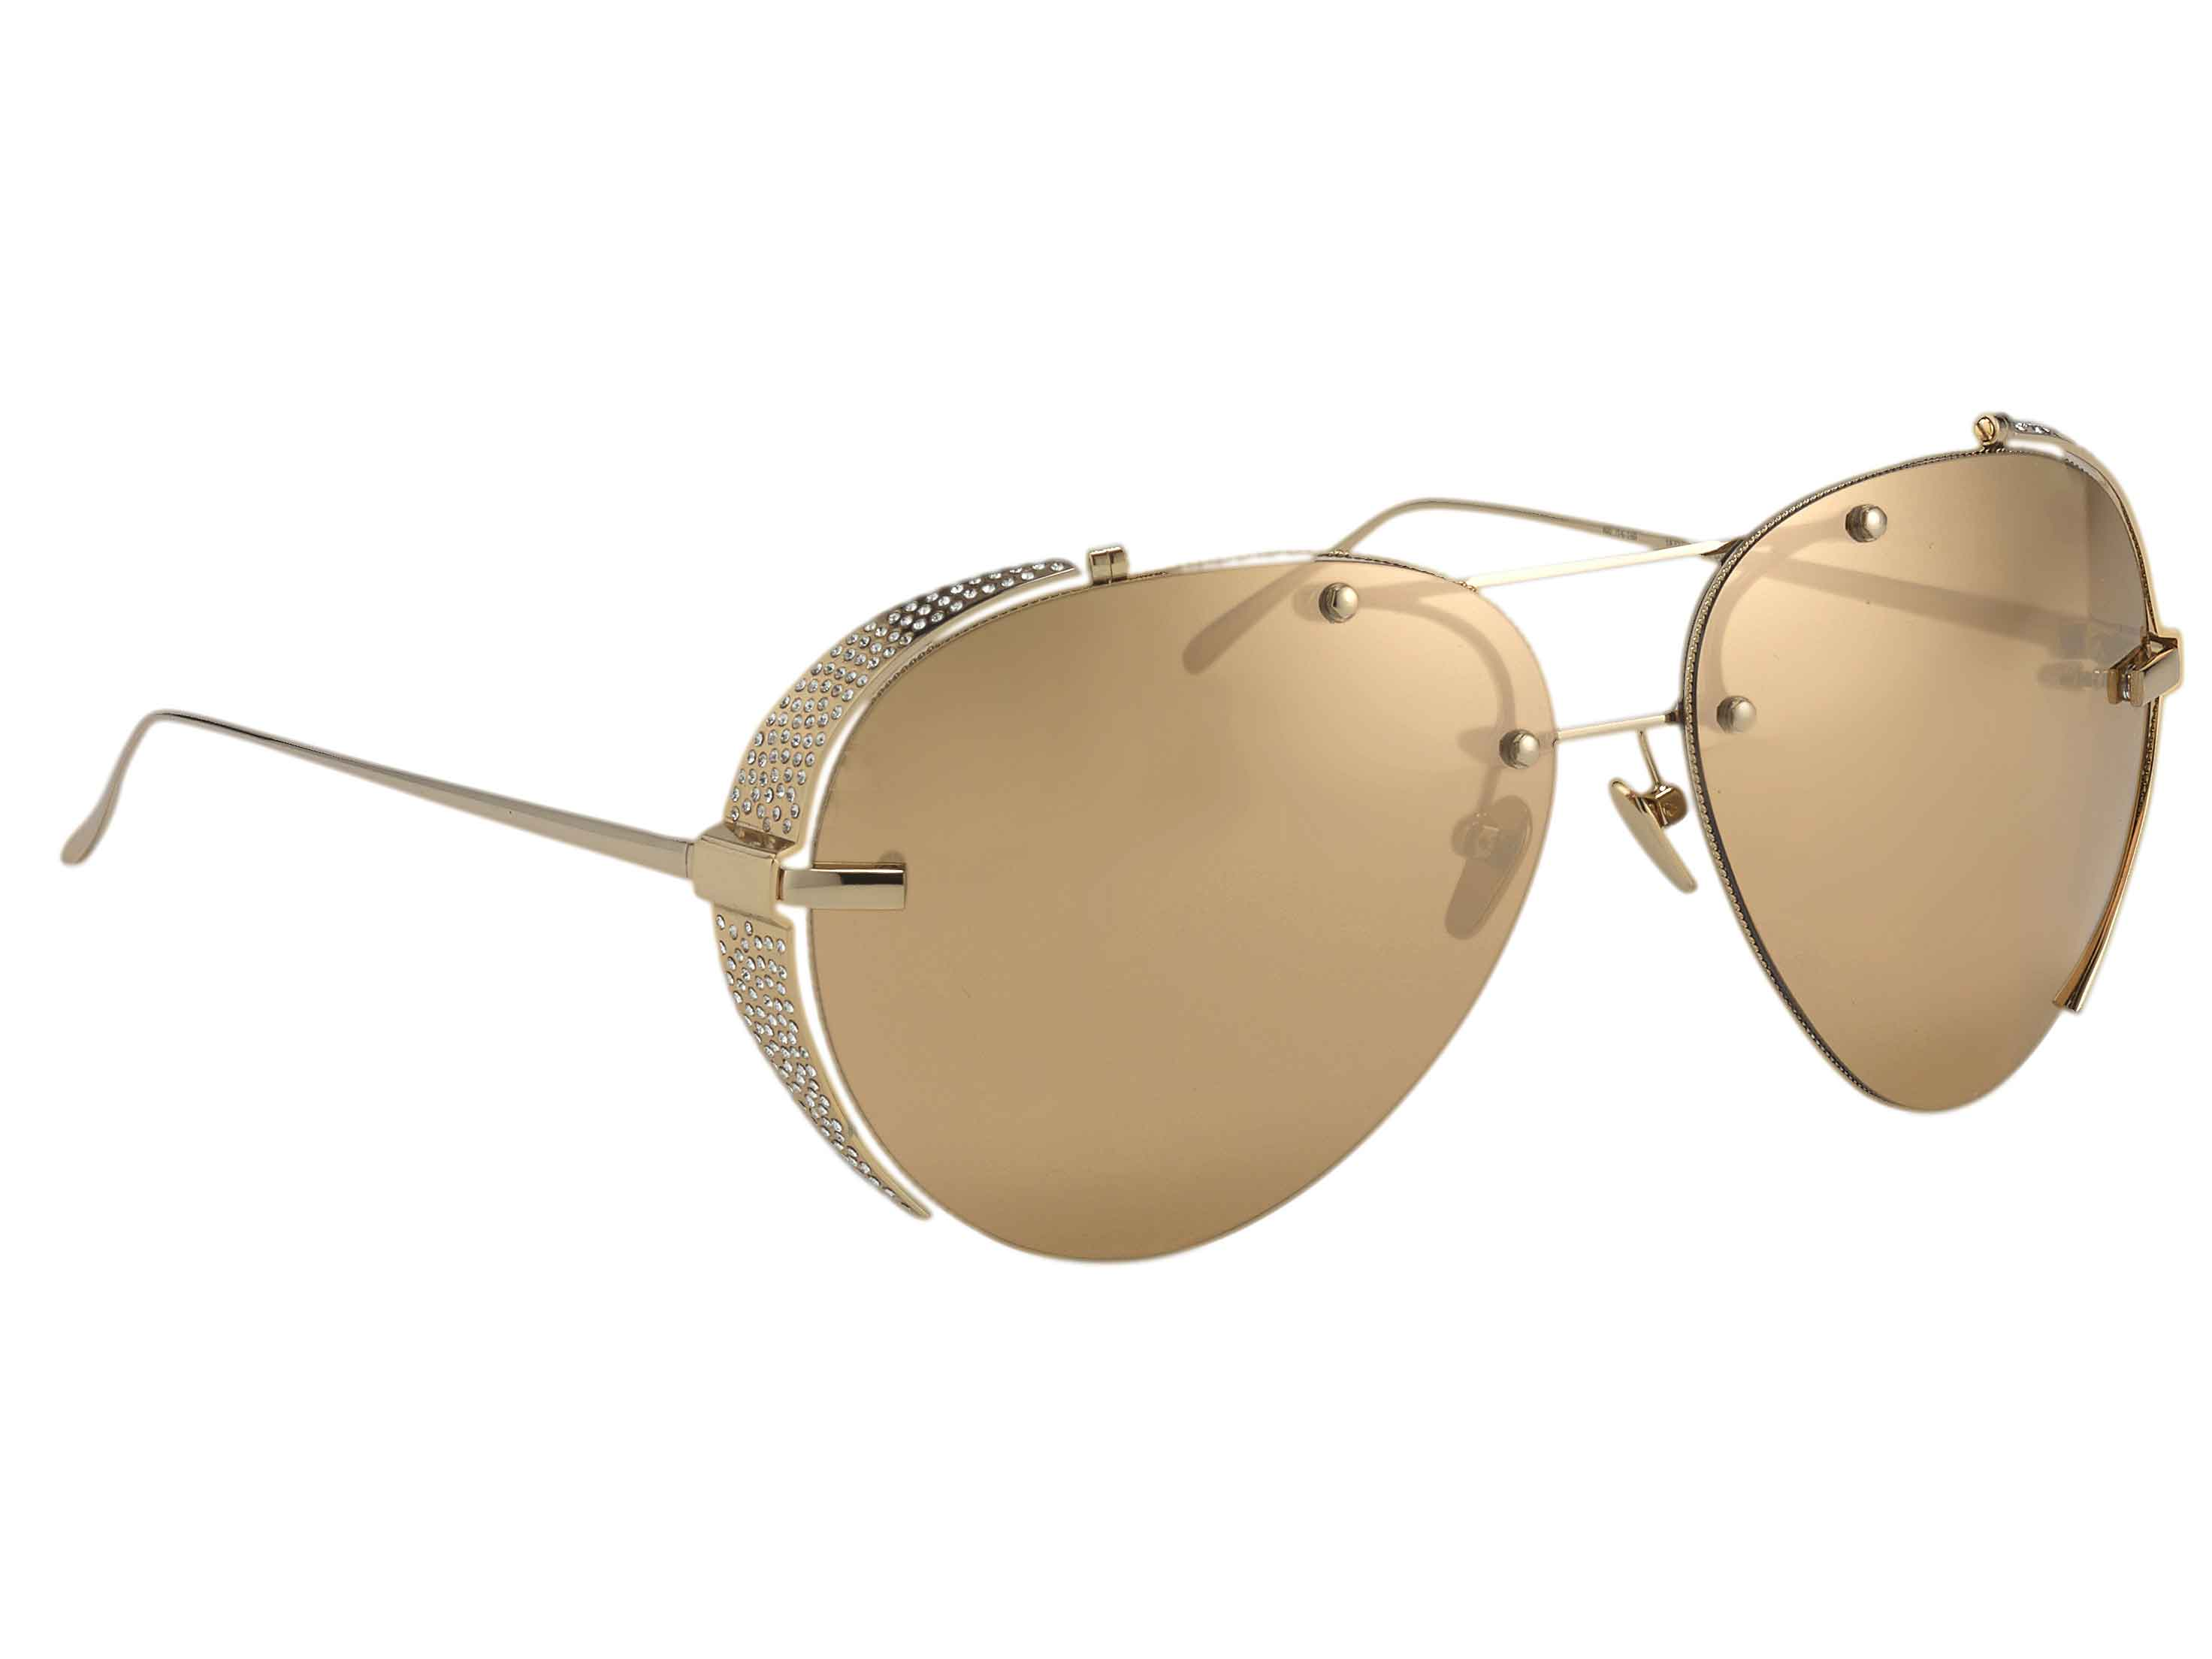 Linda Farrow | Linda Farrow Sunglasses Price | Linda Farrow Sunglasses